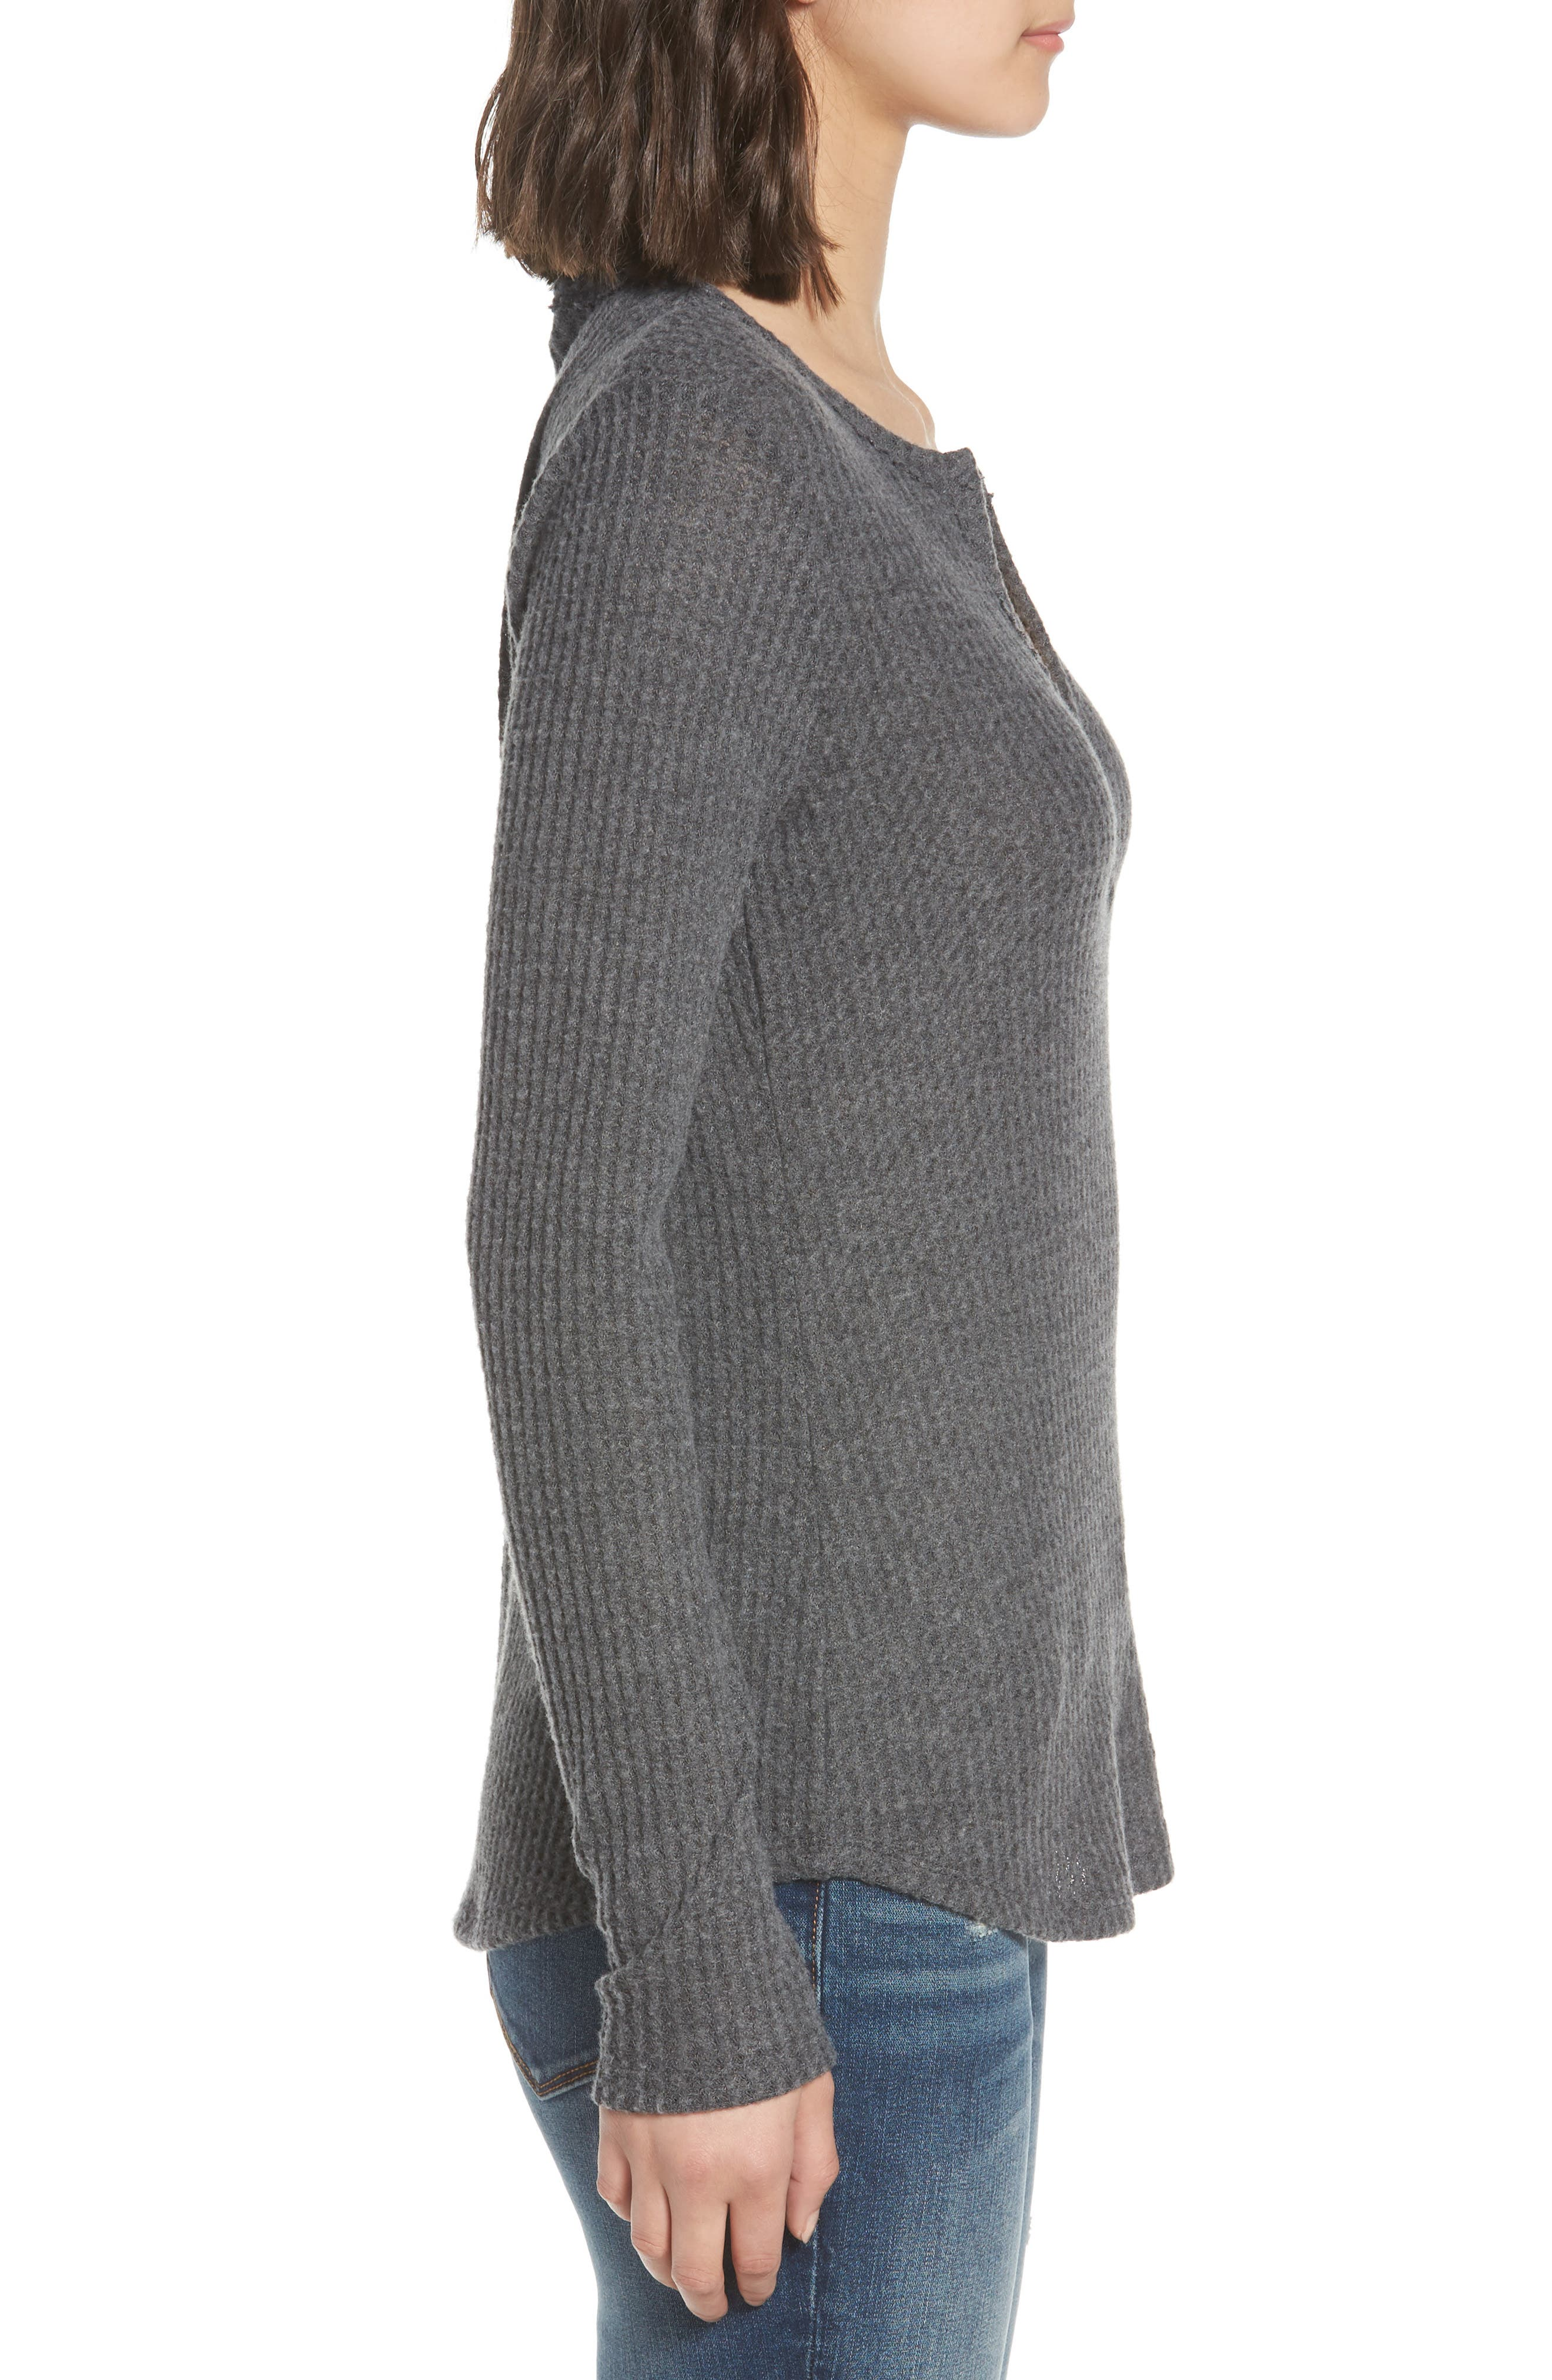 SOCIALITE, Thermal Henley Top, Alternate thumbnail 4, color, 034